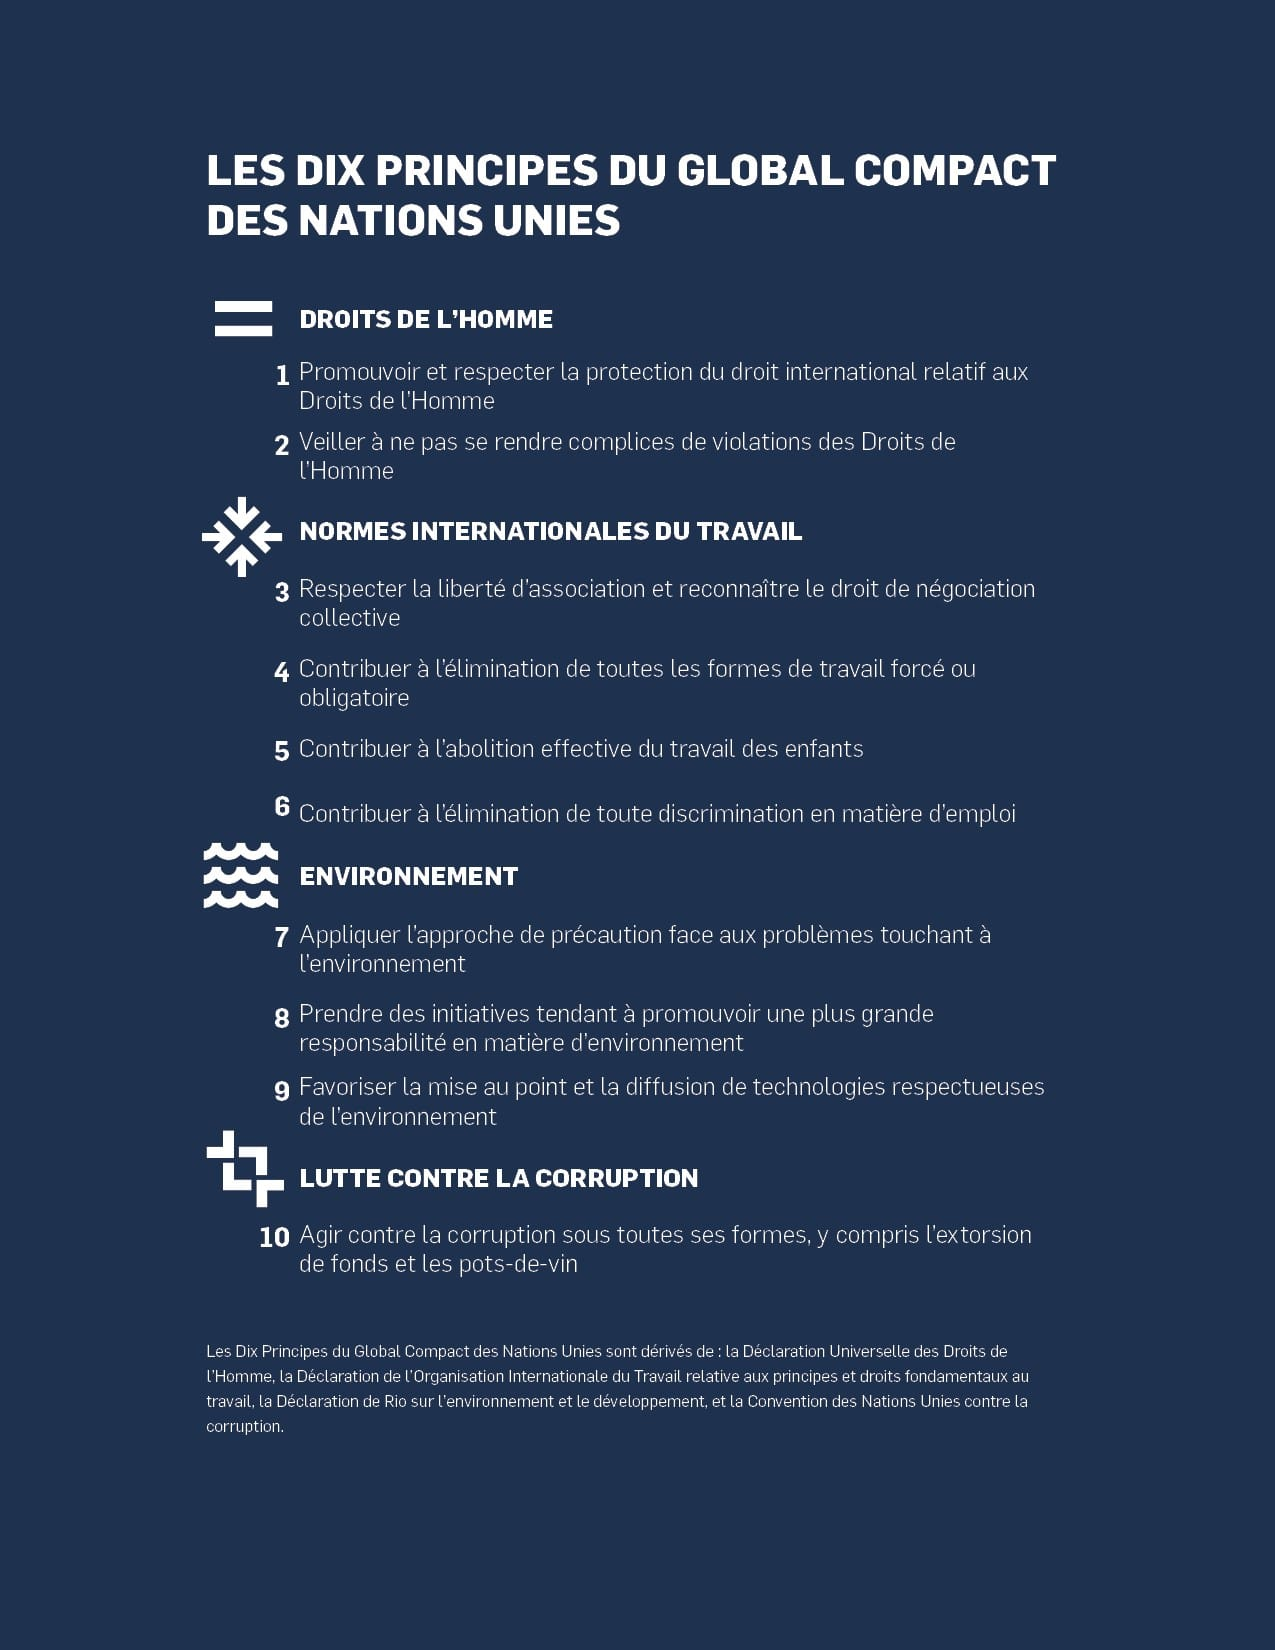 Les 10 principes du global compact des nations unies